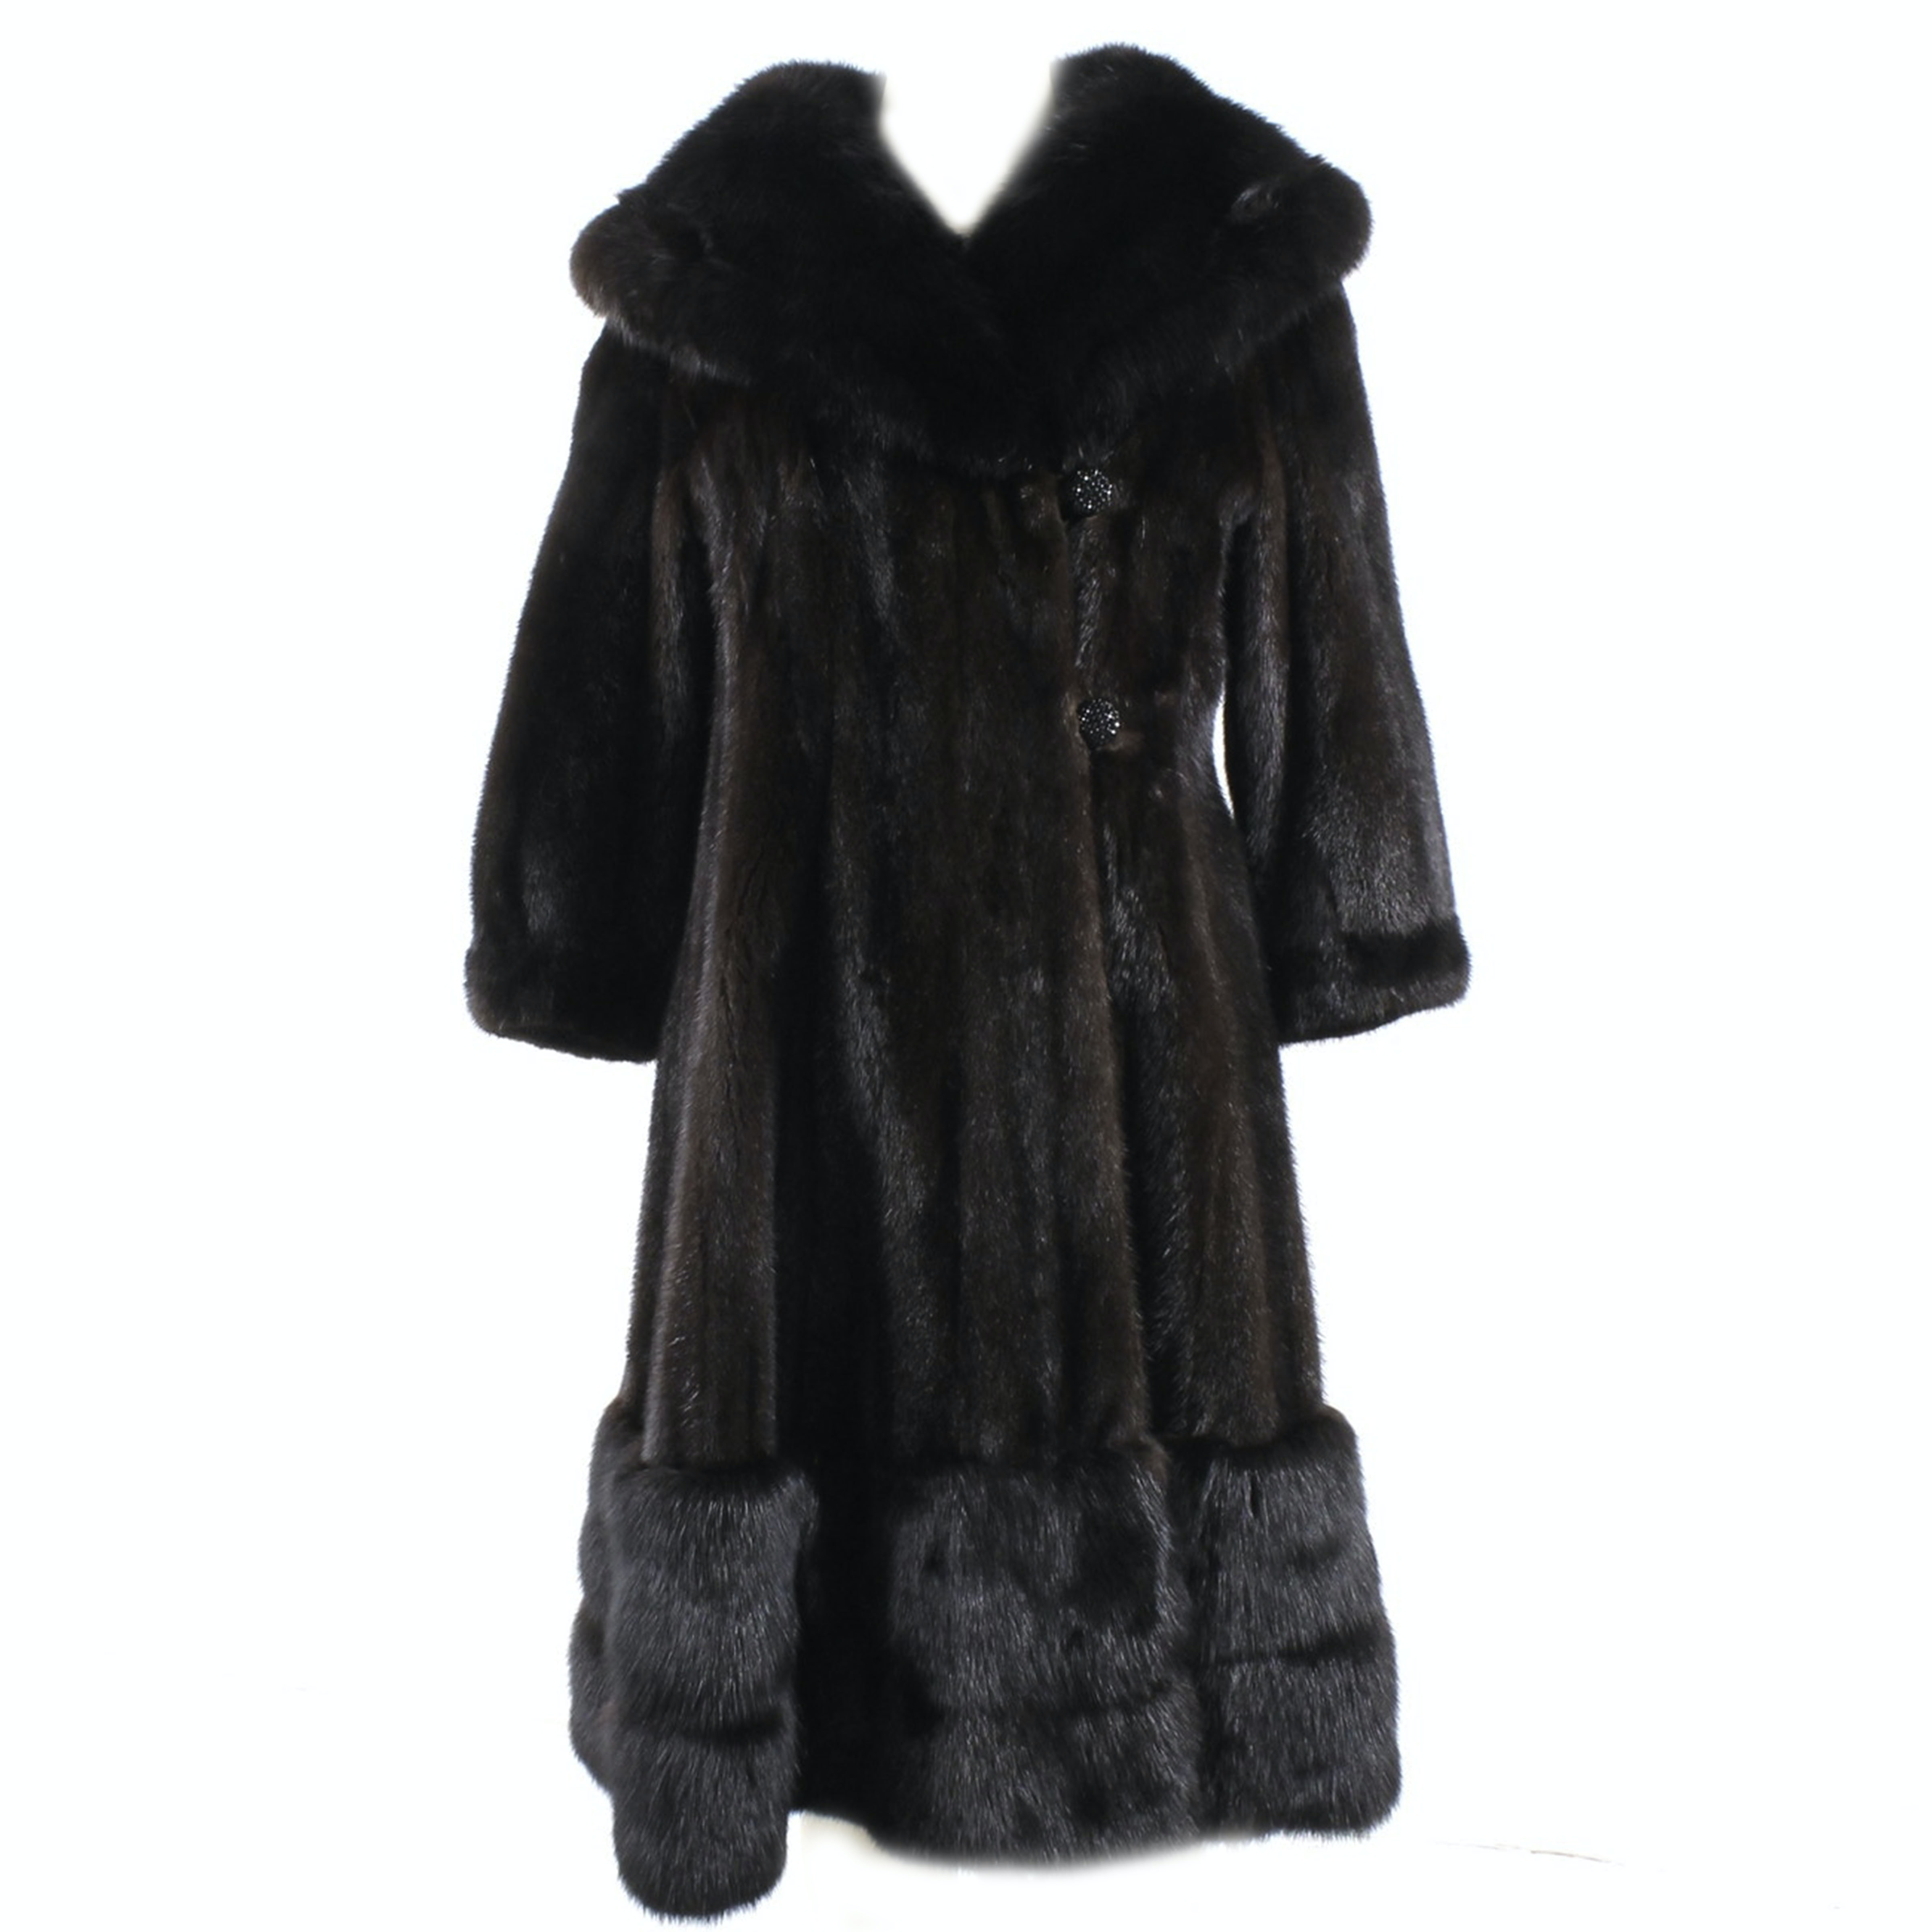 Sable Trimmed Mahogany Mink Fur Coat